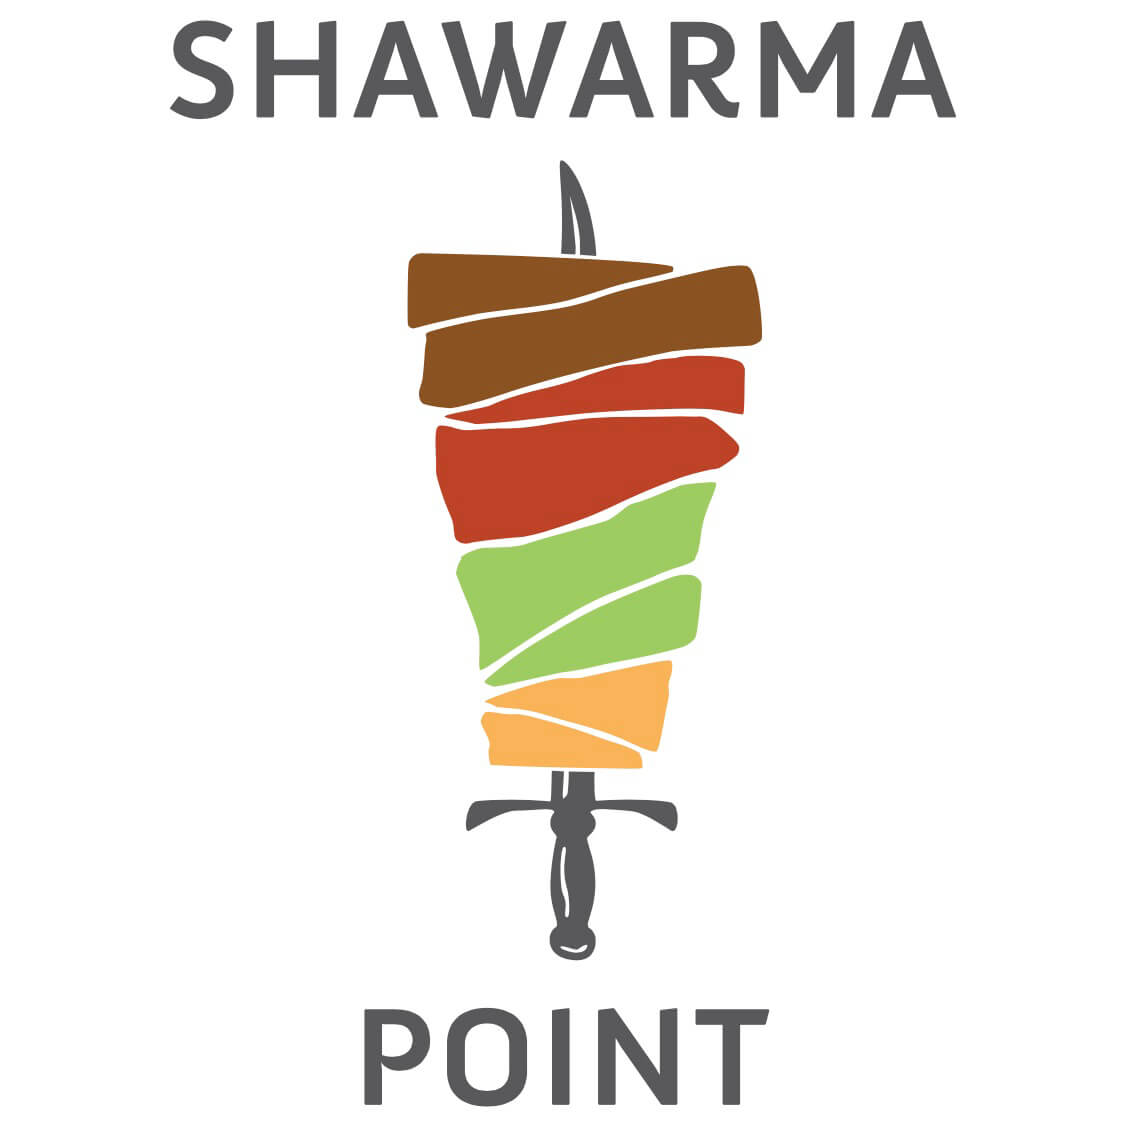 shawarma point